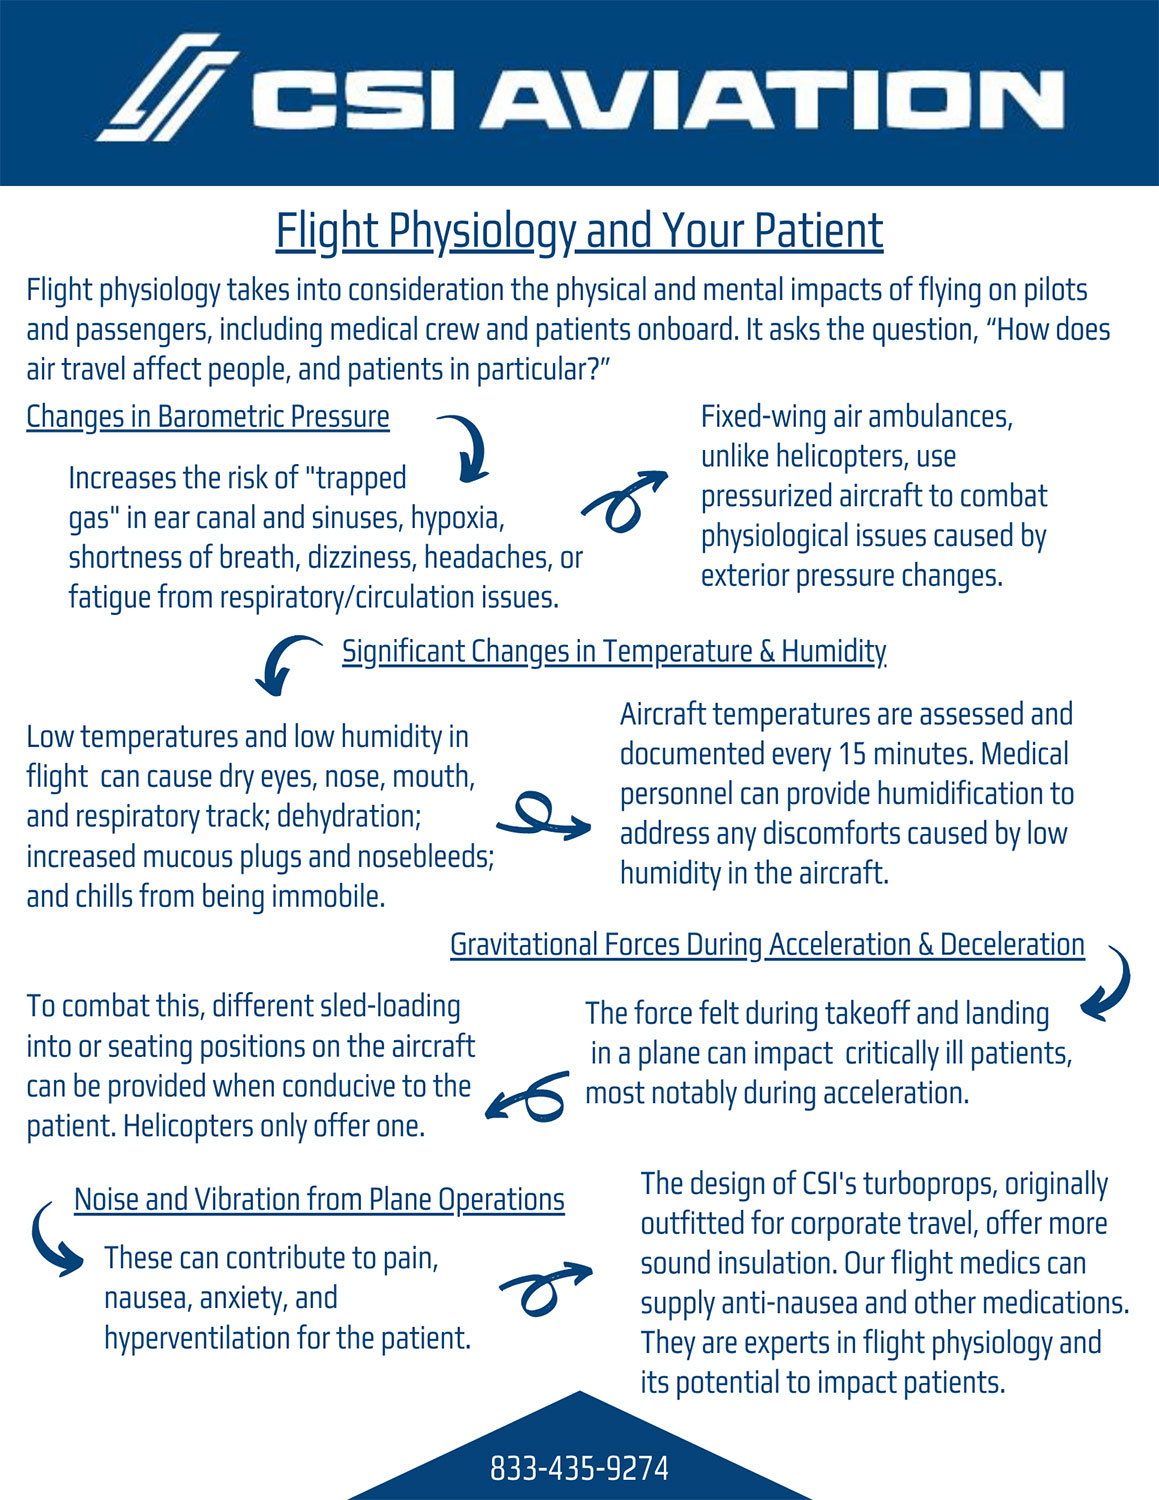 Flight Physiology and Your Patients